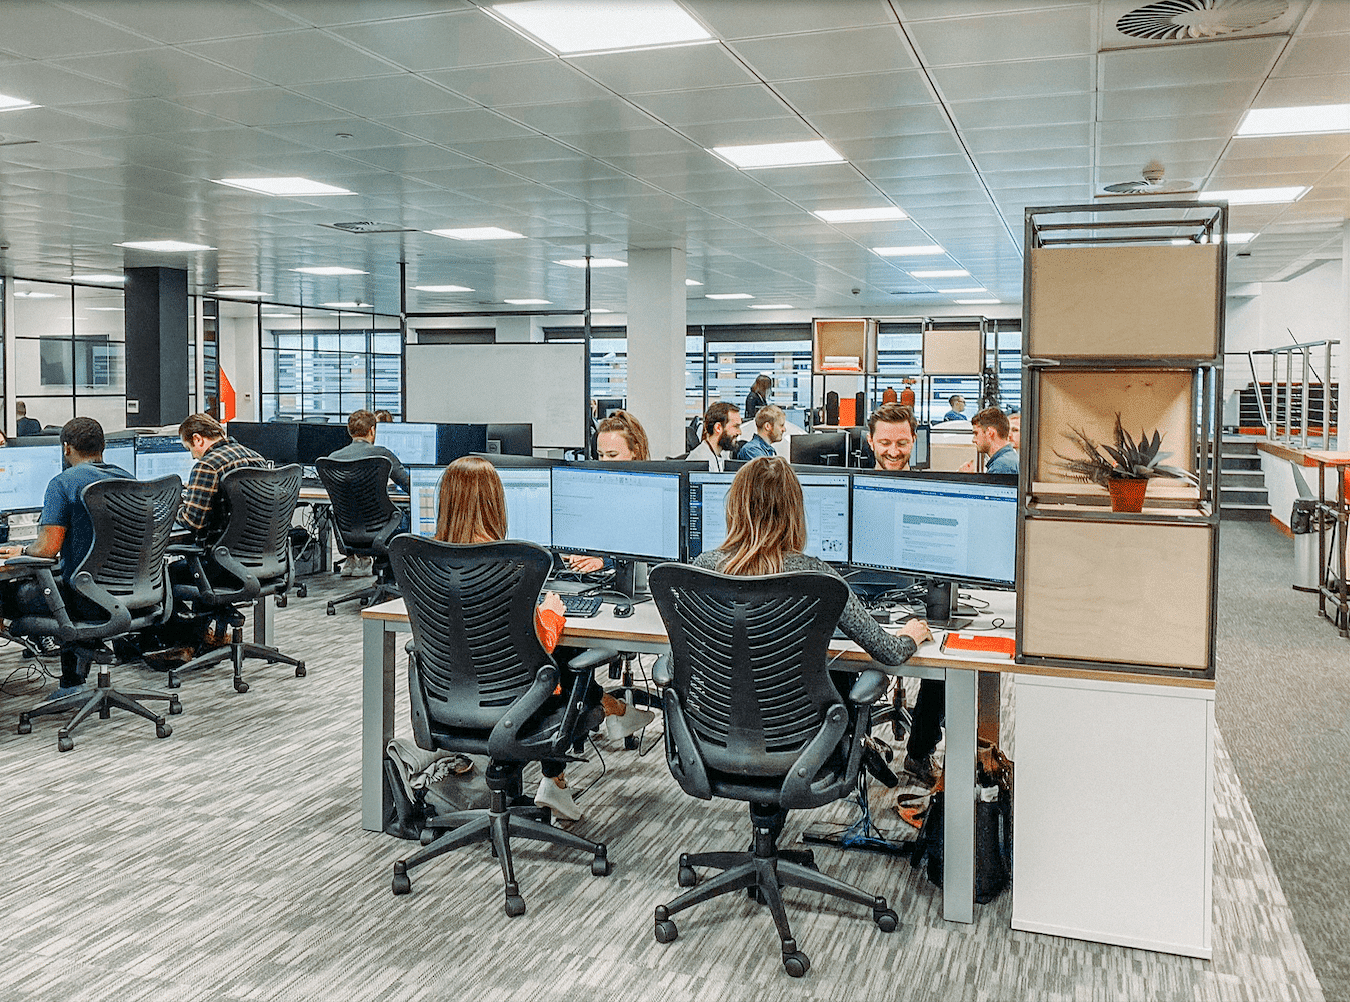 People at desks in an office